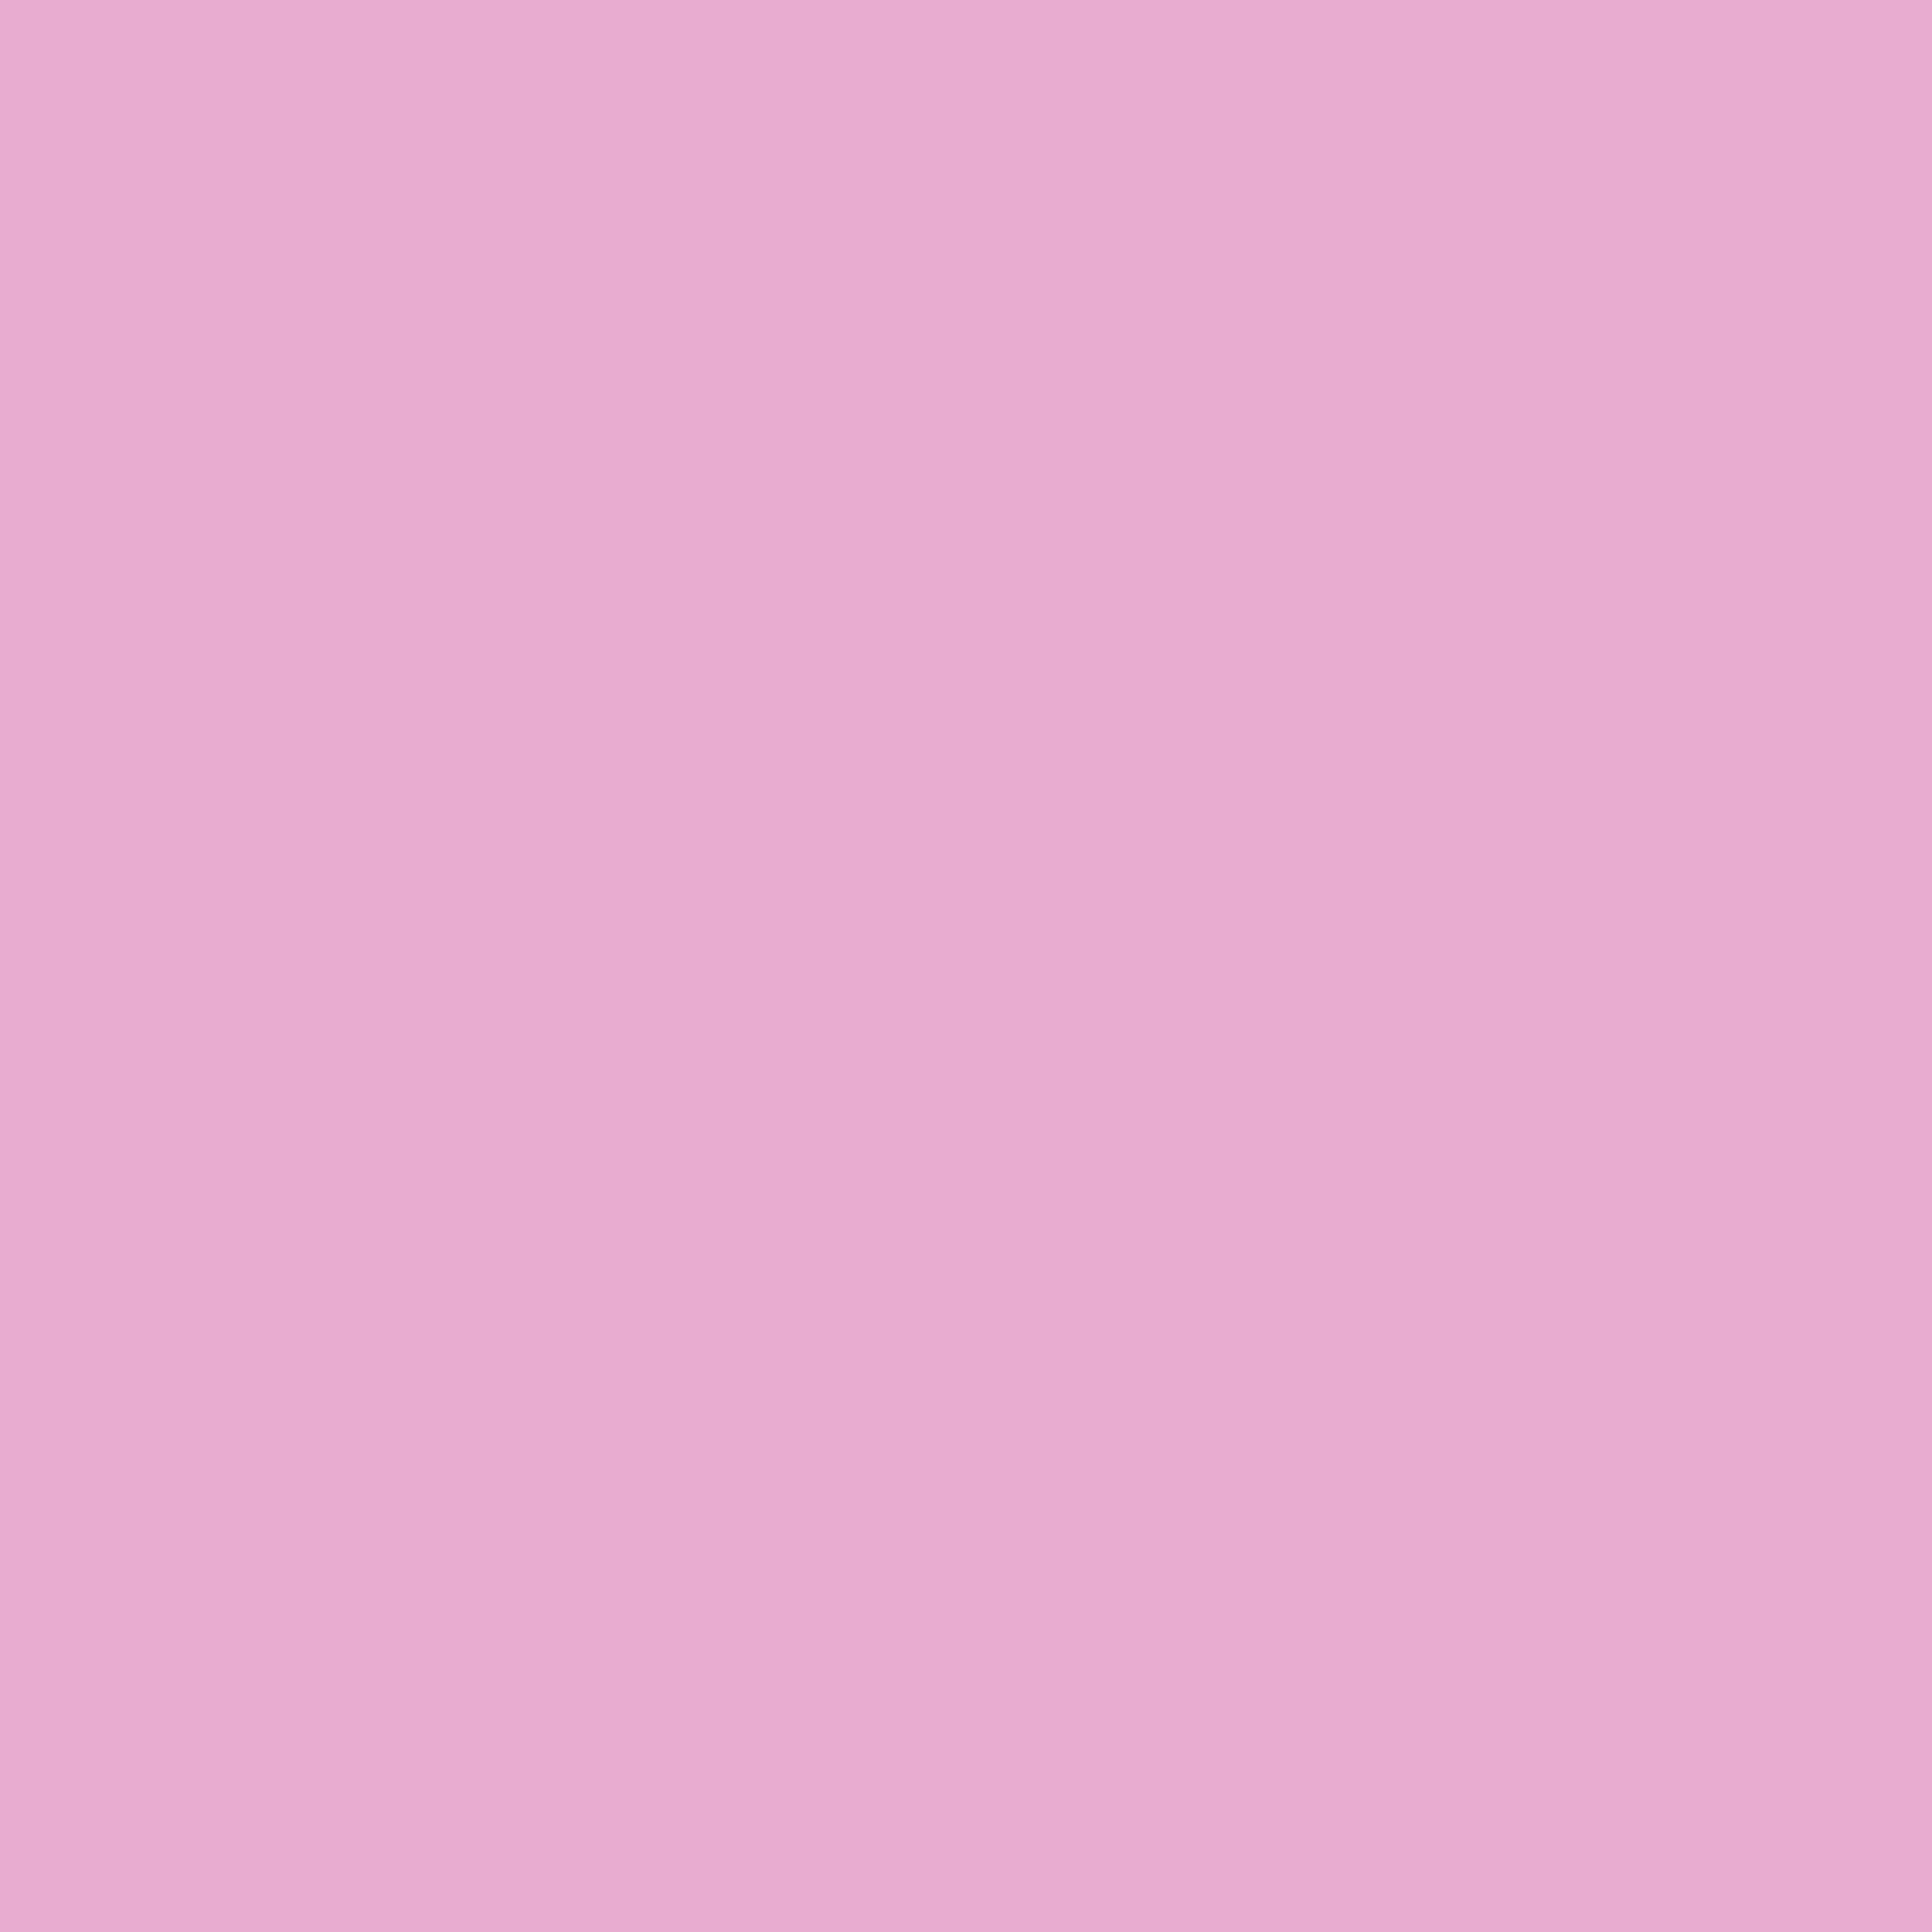 3600x3600 Pink Pearl Solid Color Background